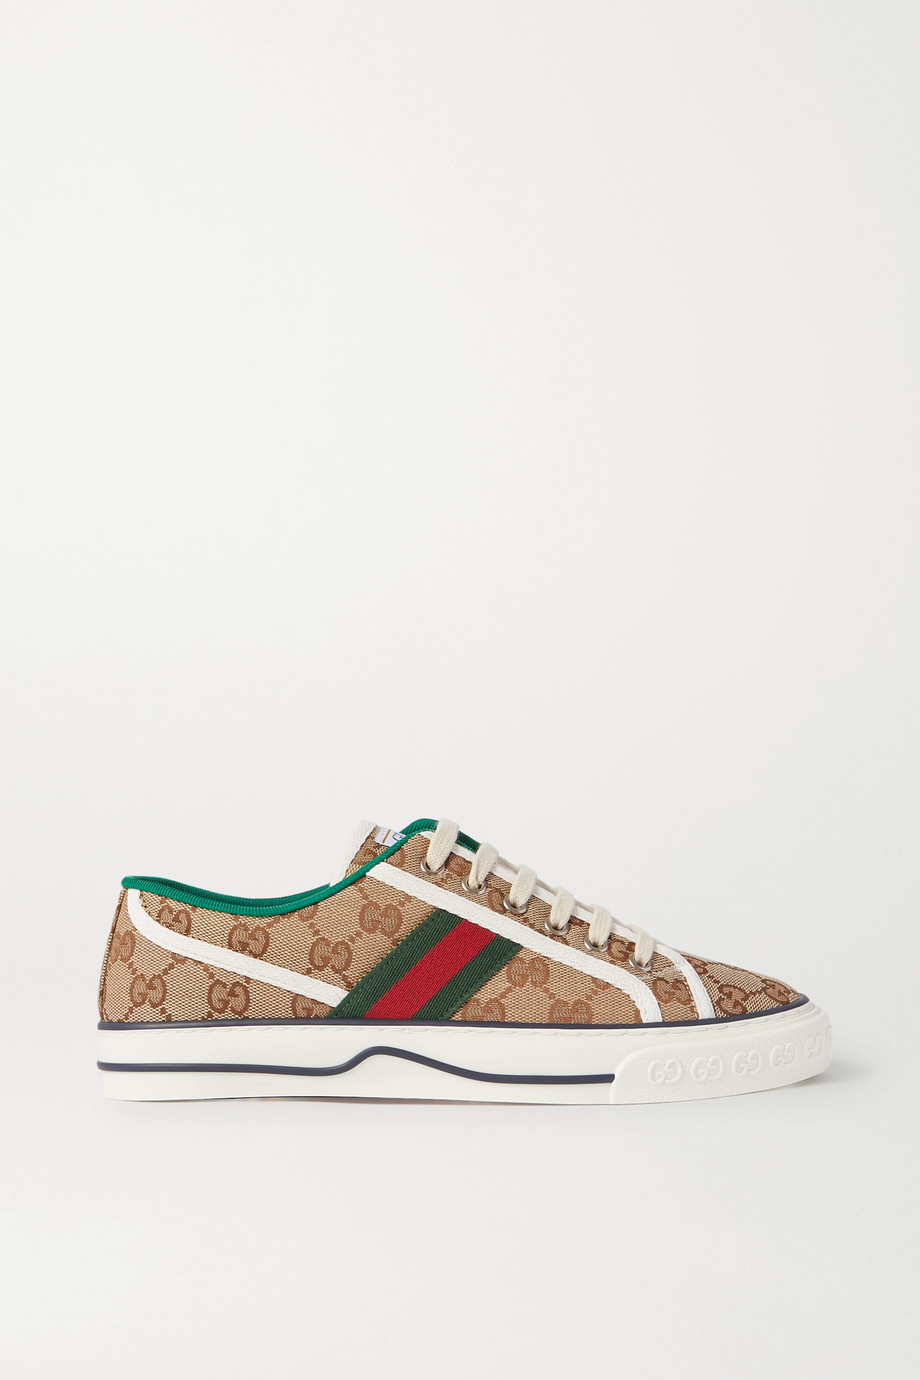 Gucci Tennis 1977 logo-embroidered canvas sneakers